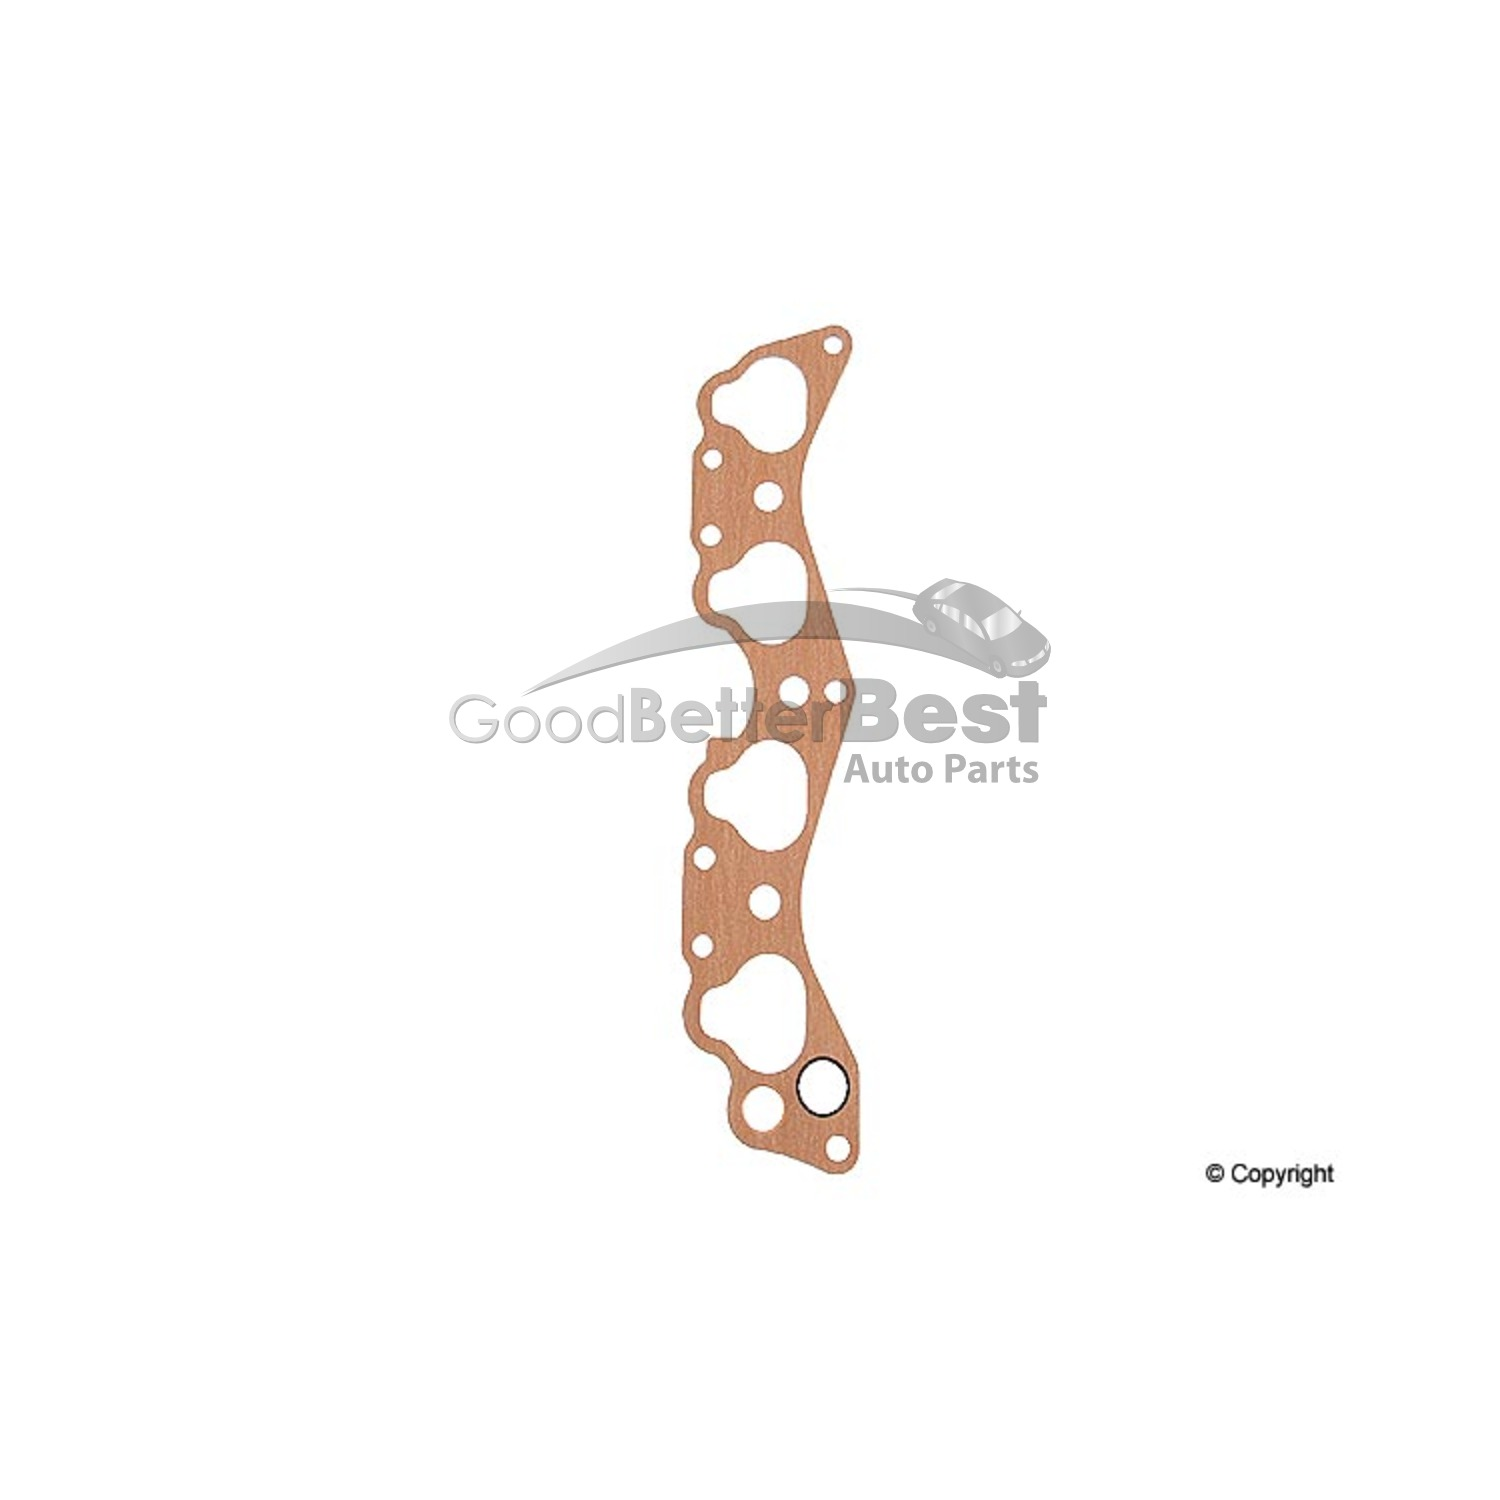 For Honda Civic Civic del Sol Engine Intake Manifold Gasket Stone 17105P08004